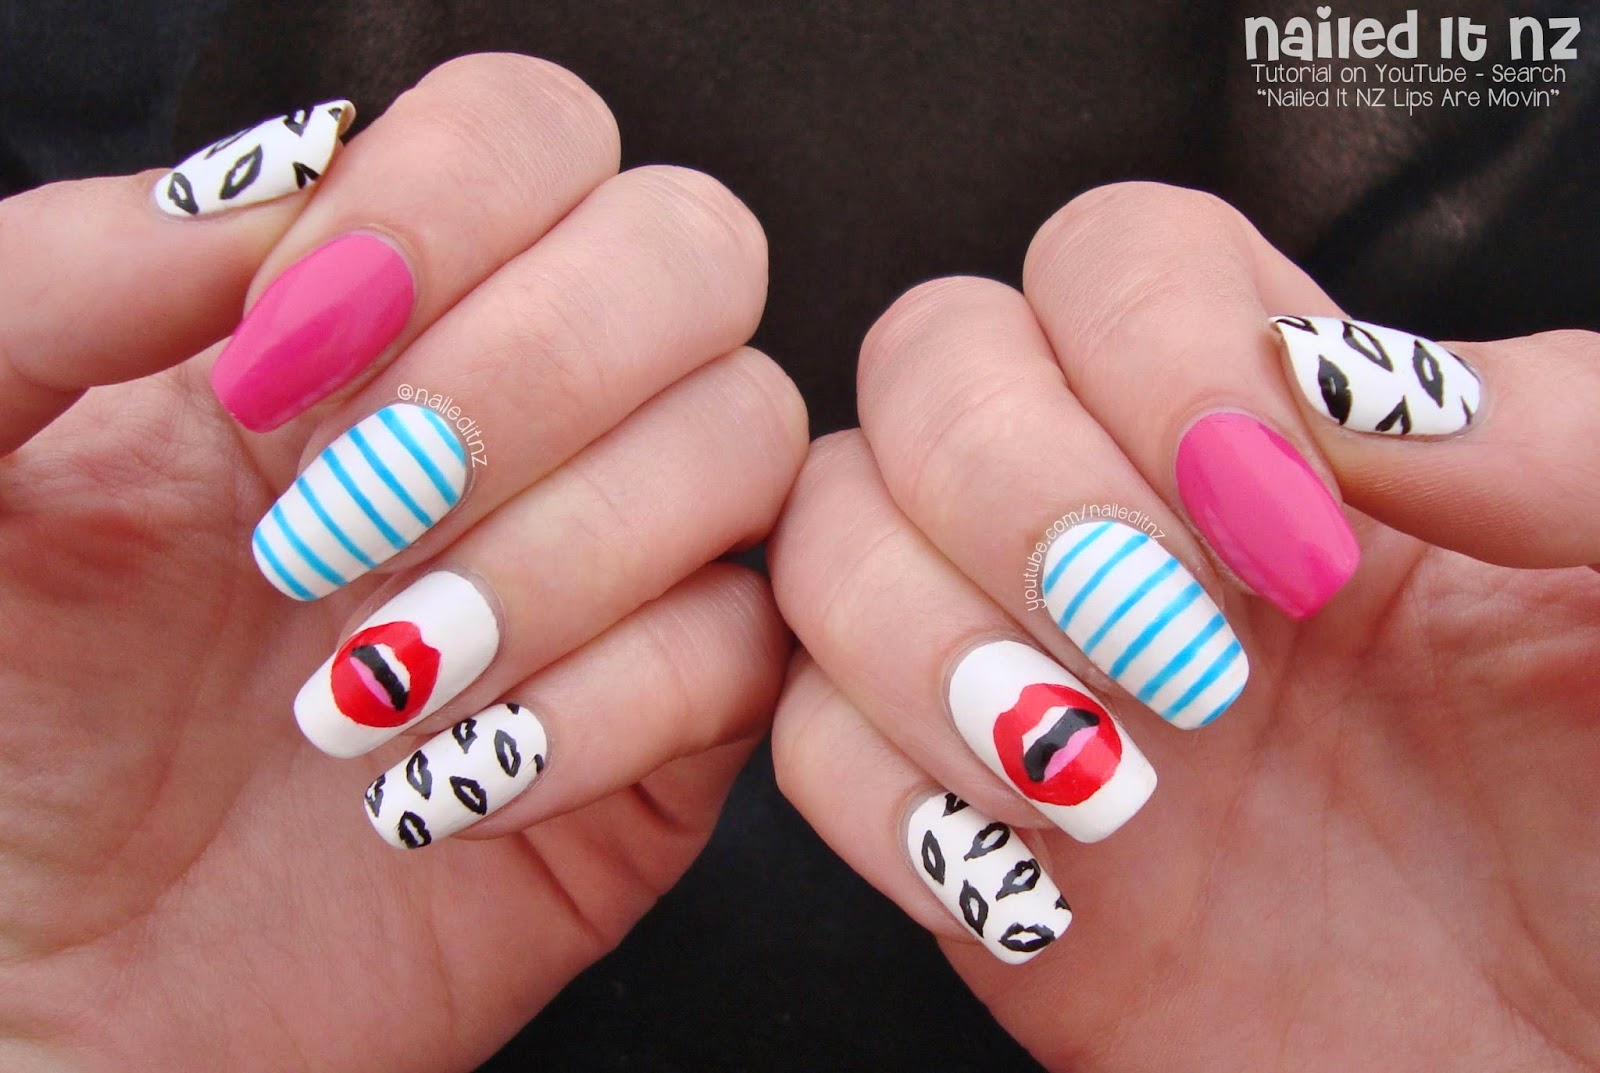 Meghan Trainor Lips Are Movin Nail Art Tutorial